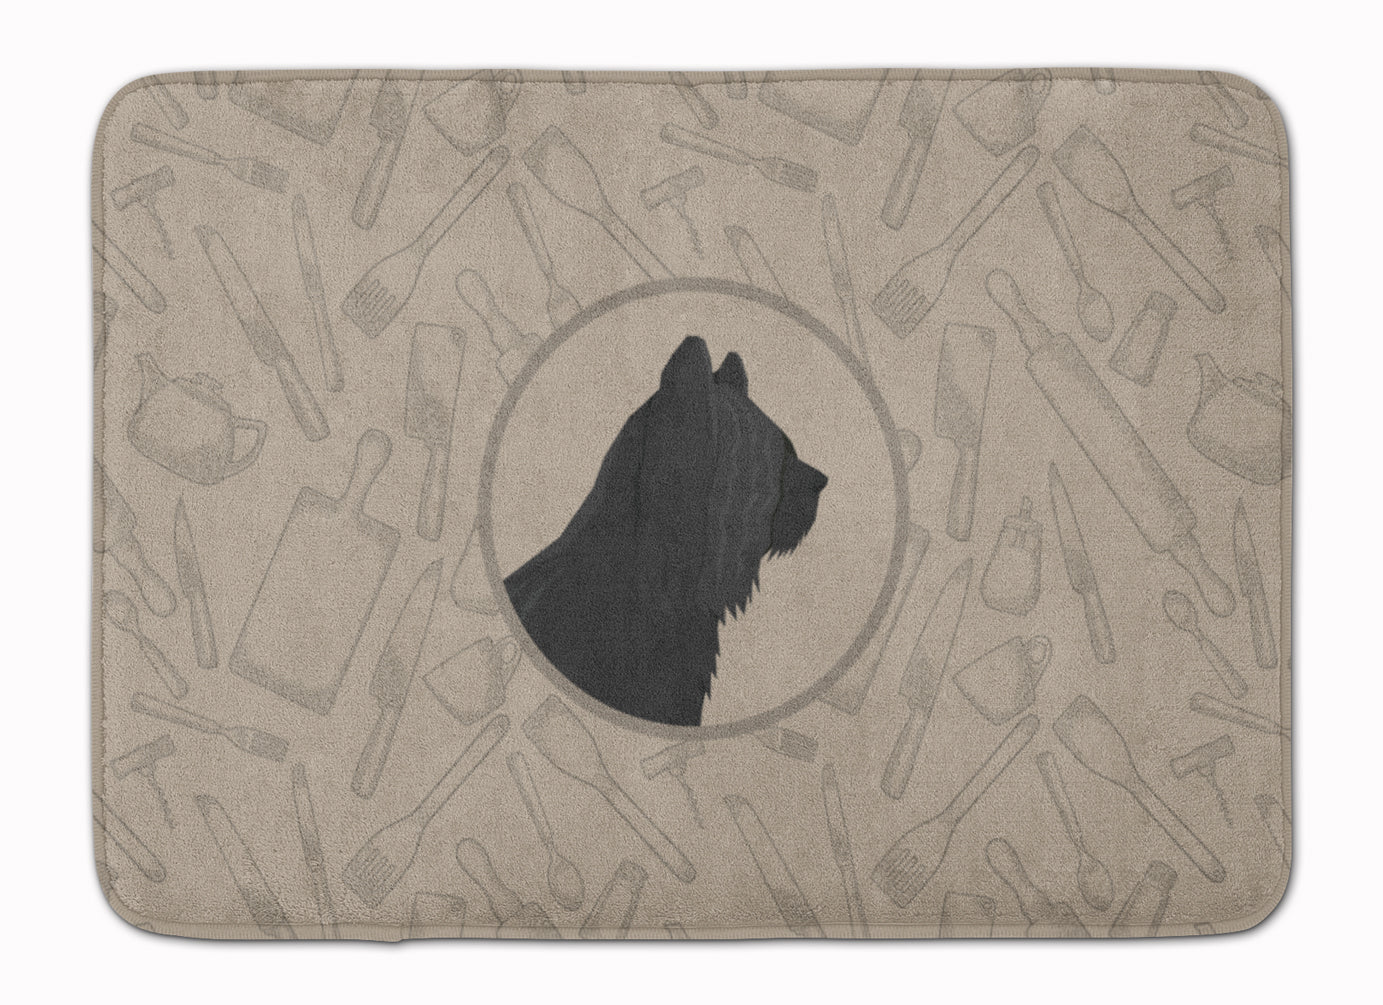 Skye Terrier In the Kitchen Machine Washable Memory Foam Mat CK2211RUG by Caroline's Treasures